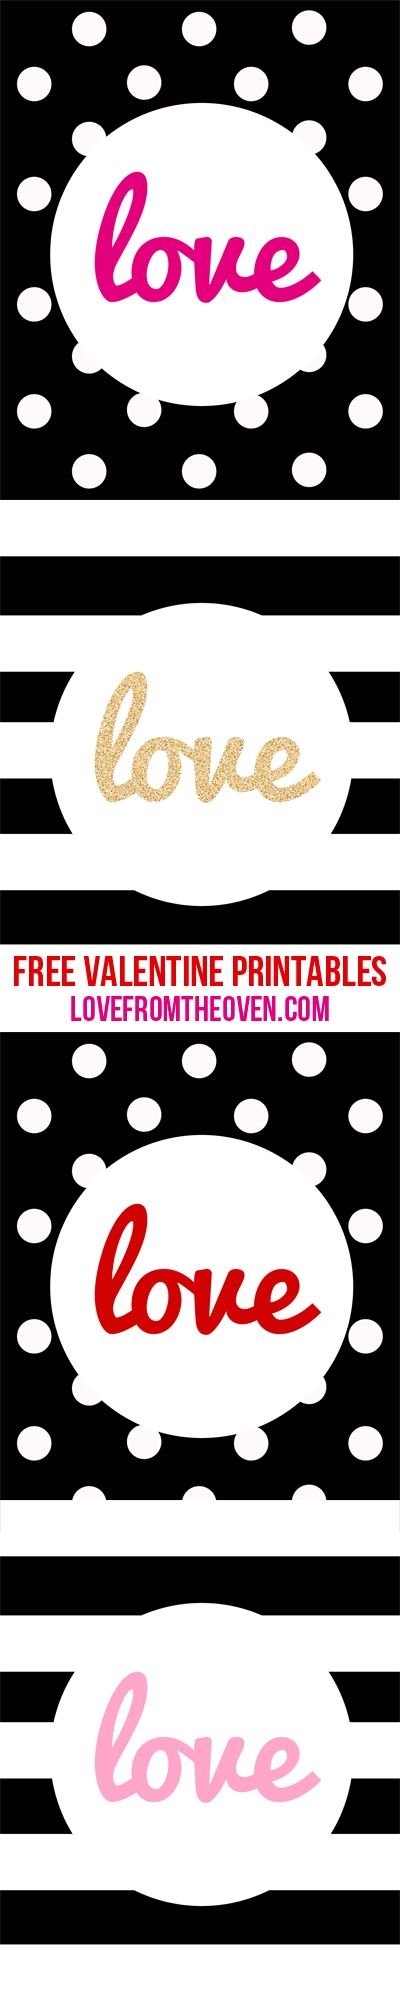 Free Valentine Printables by Love From The Oven.  Black and white dots and stripes (so Kate Spade!), with pink, red, gold and black accents.  Print in 16x20 or 8x10 and frame and voila, Valentine's Day decor!  Love these!